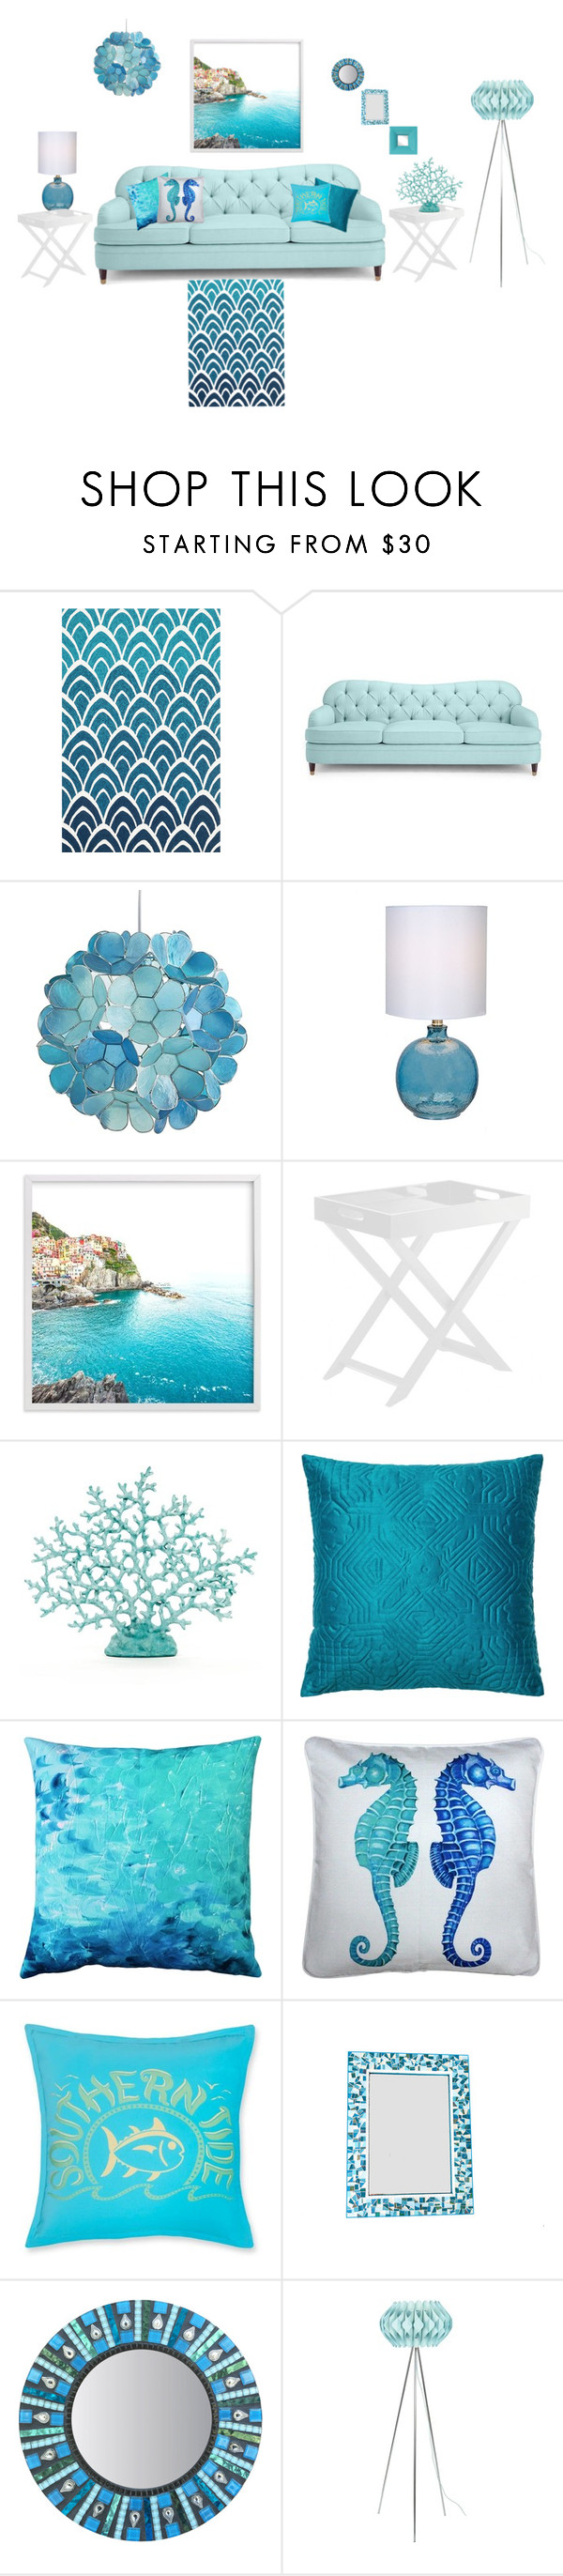 """""""Turquoise Living Room"""" by siriusfunbysheila1954 ❤ liked on Polyvore featuring interior, interiors, interior design, home, home decor, interior decorating, Loloi Rugs, Kate Spade, Pier 1 Imports and Pillow Decor"""